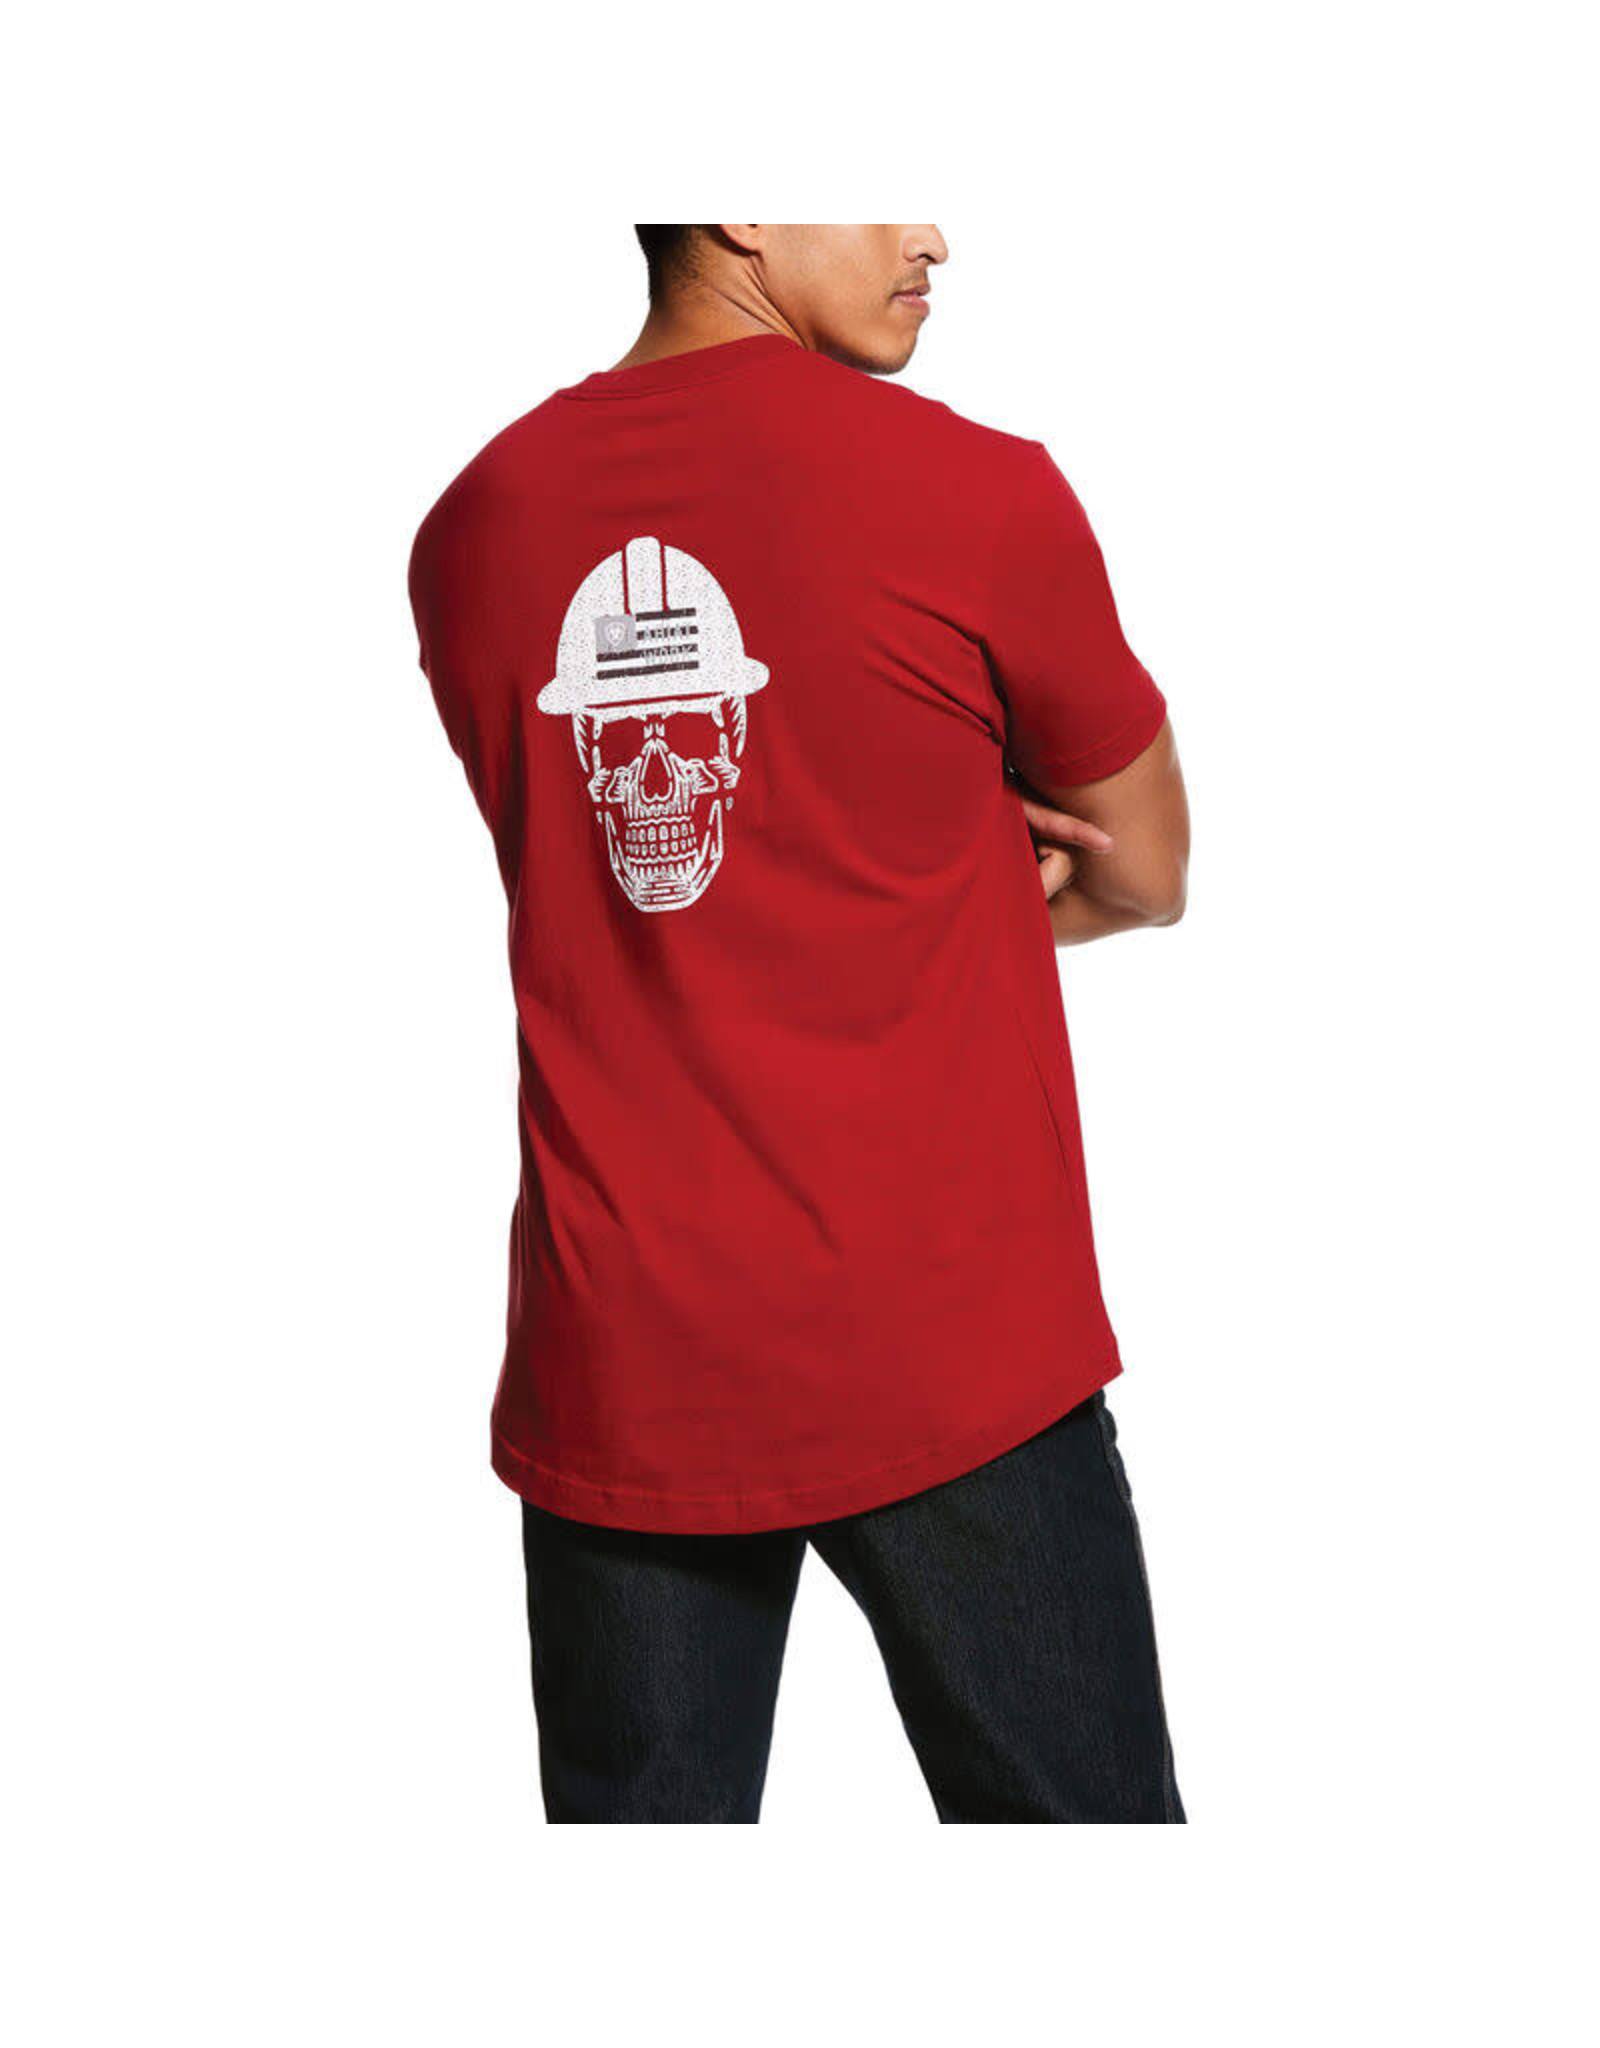 Ariat Rebar Cotton Strong Roughneck Graphic T-Shirt